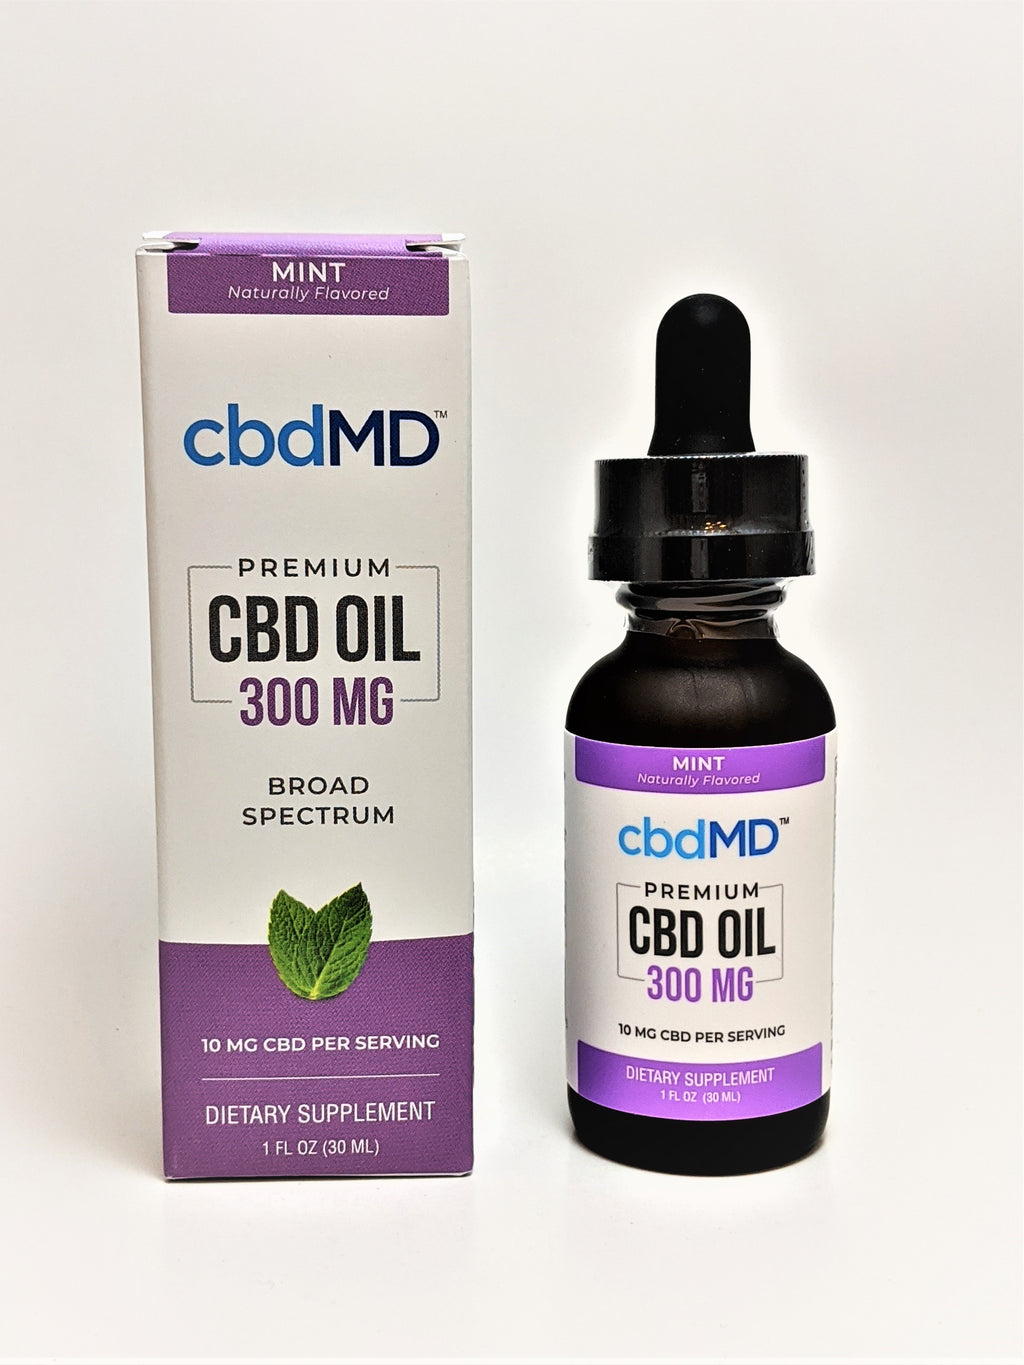 cbdMD 300 mg Oil - Mint Flavor - CBD Central